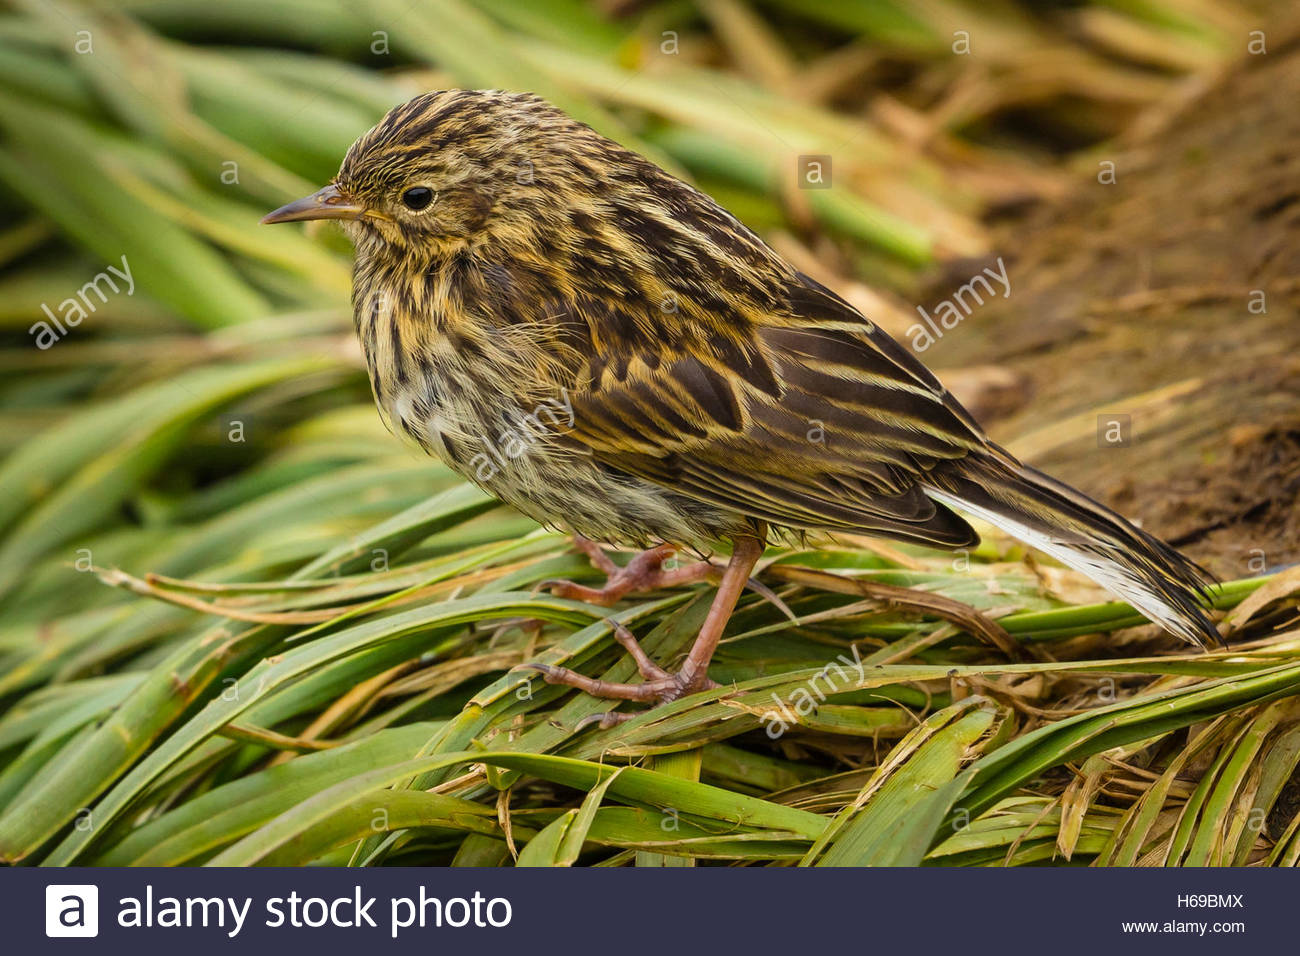 A South Georgia Pipit, an endangered bird, on Prion Island in South Georgia, Antarctica. - Stock Image